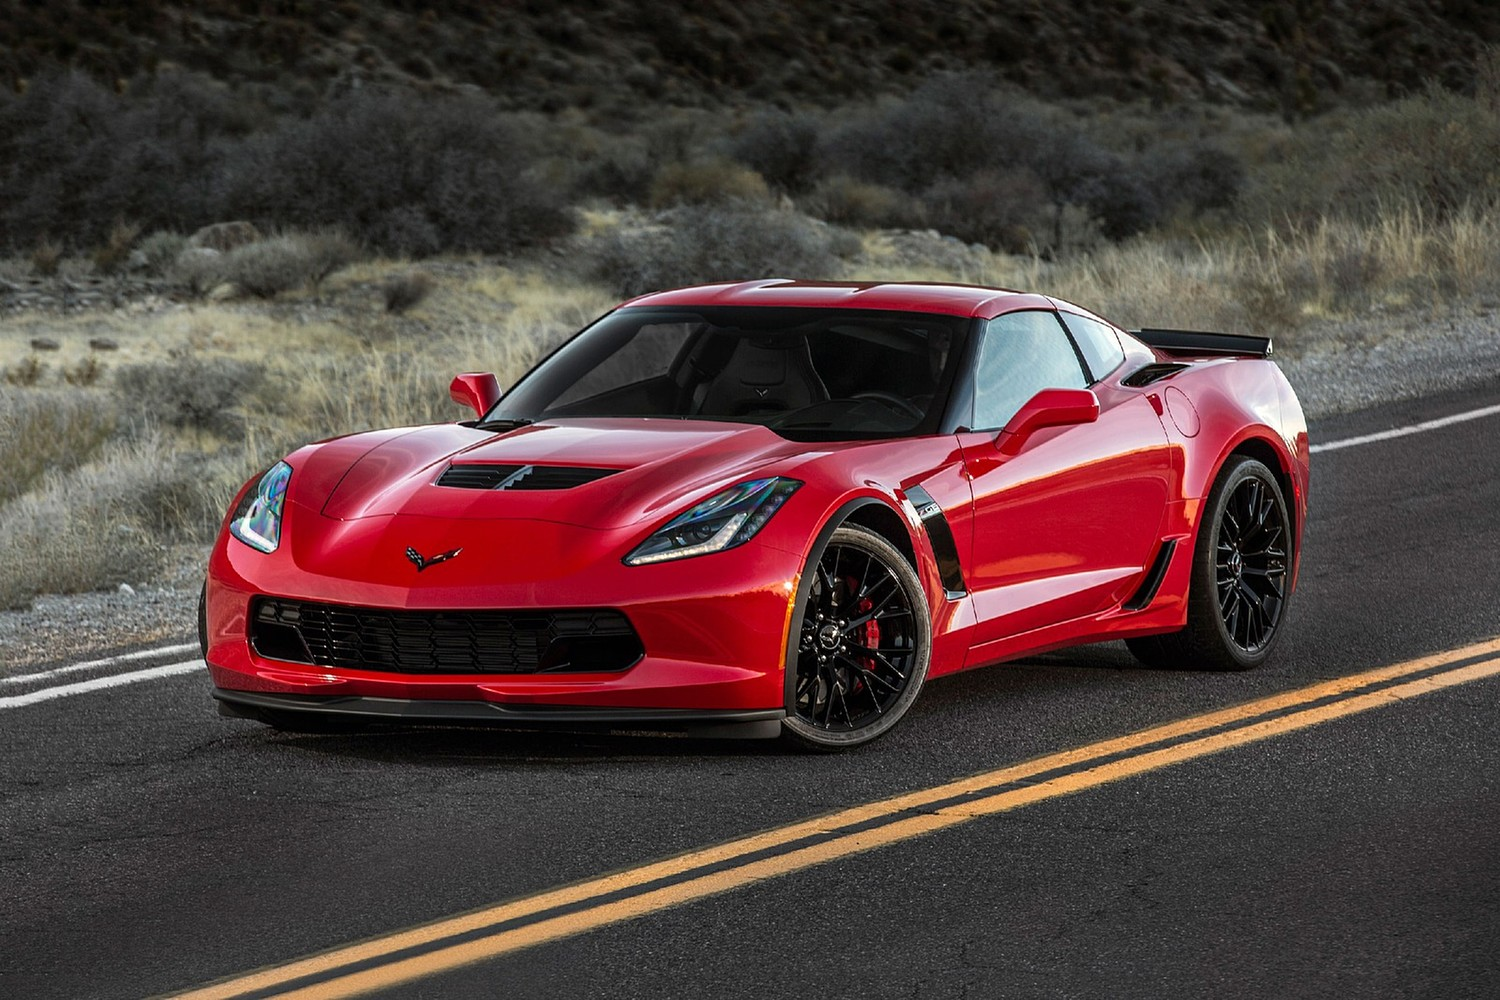 corvette chevrolet z06 coupe chevy 3lz autospies built examples only vehie exterior